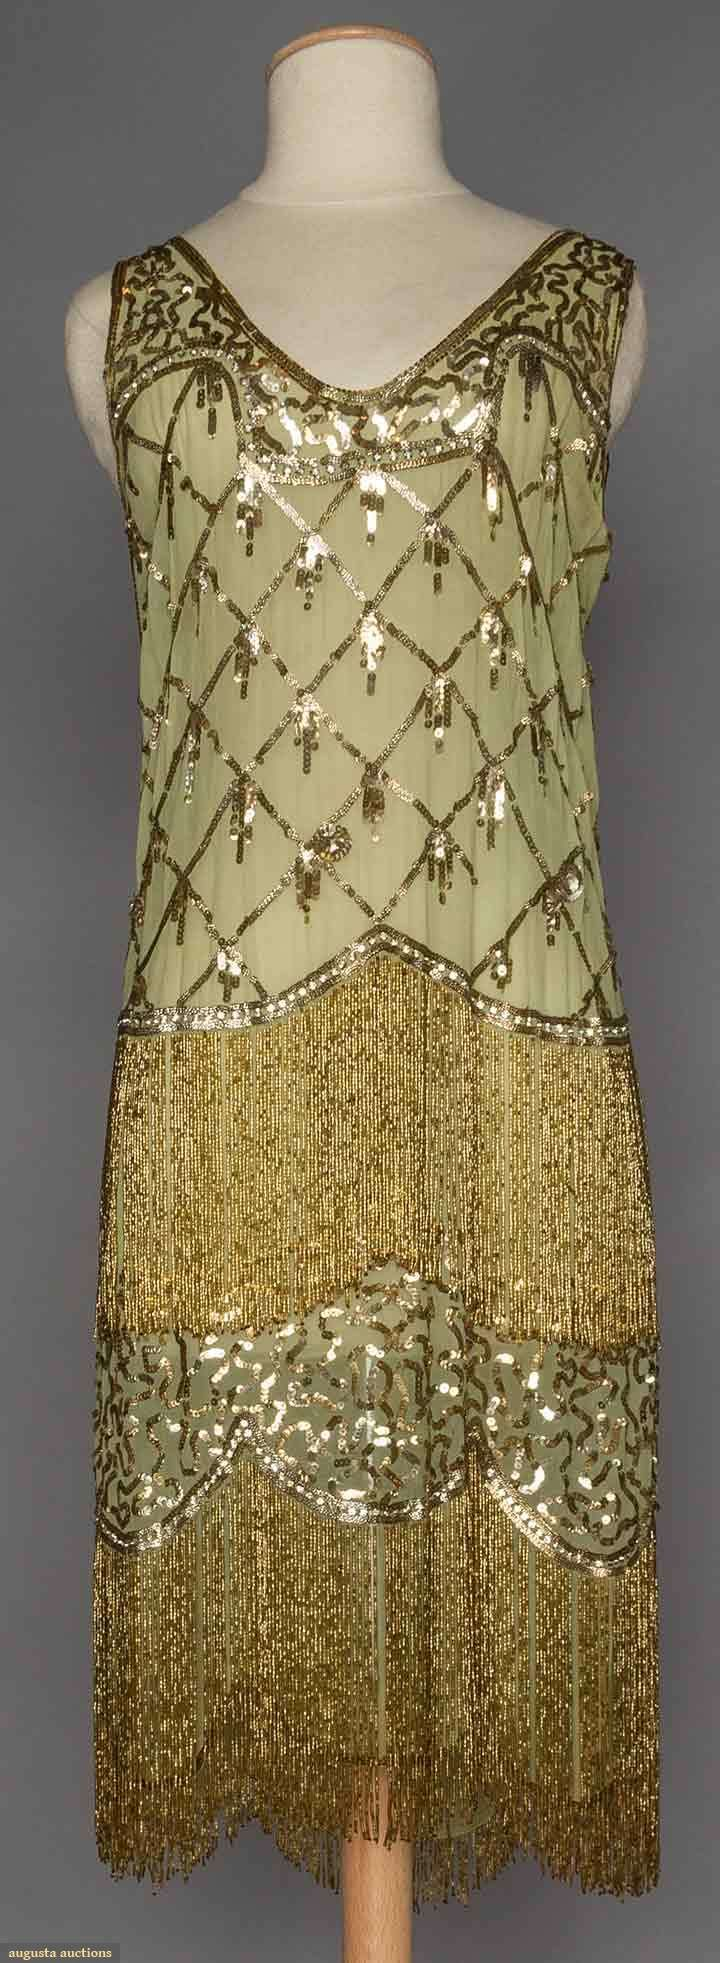 Evening dress light green chiffon flapper dress gold and silver